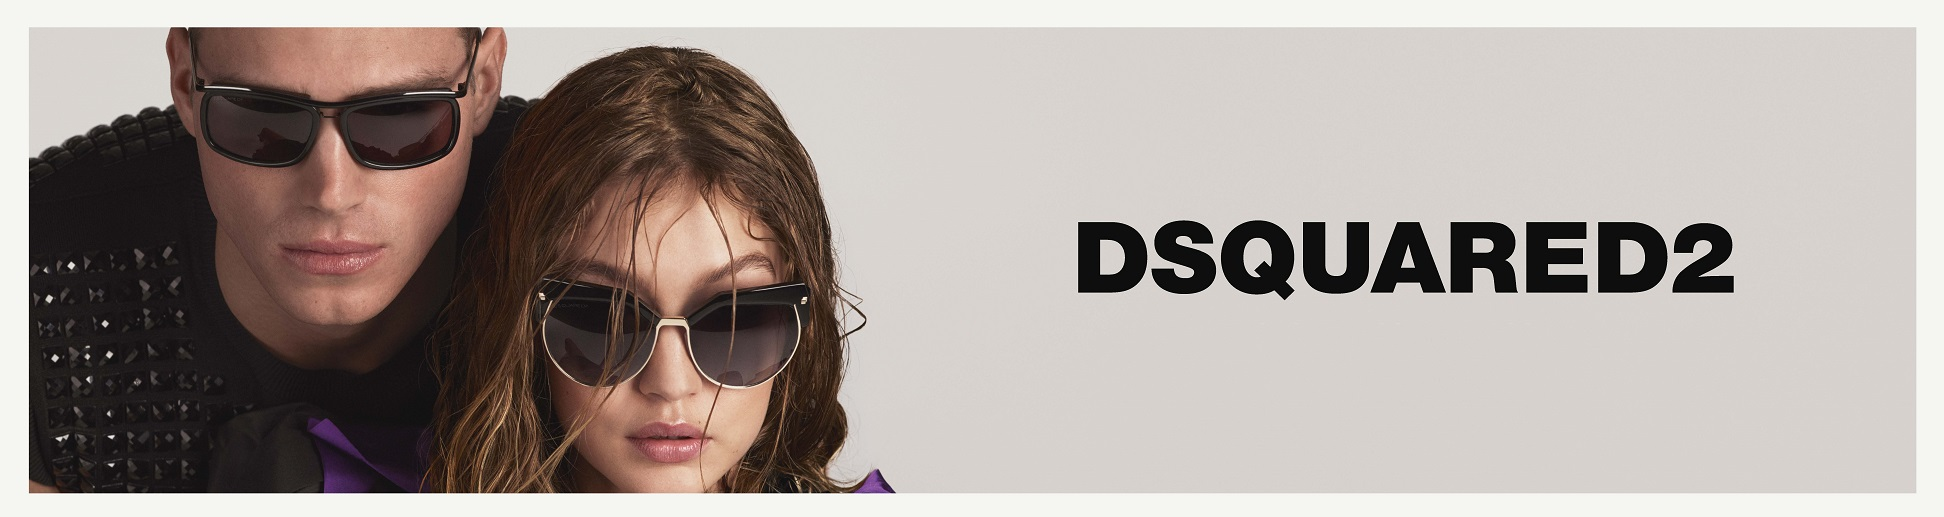 407656dacd85 Dsquared2 online bei Mister Spex